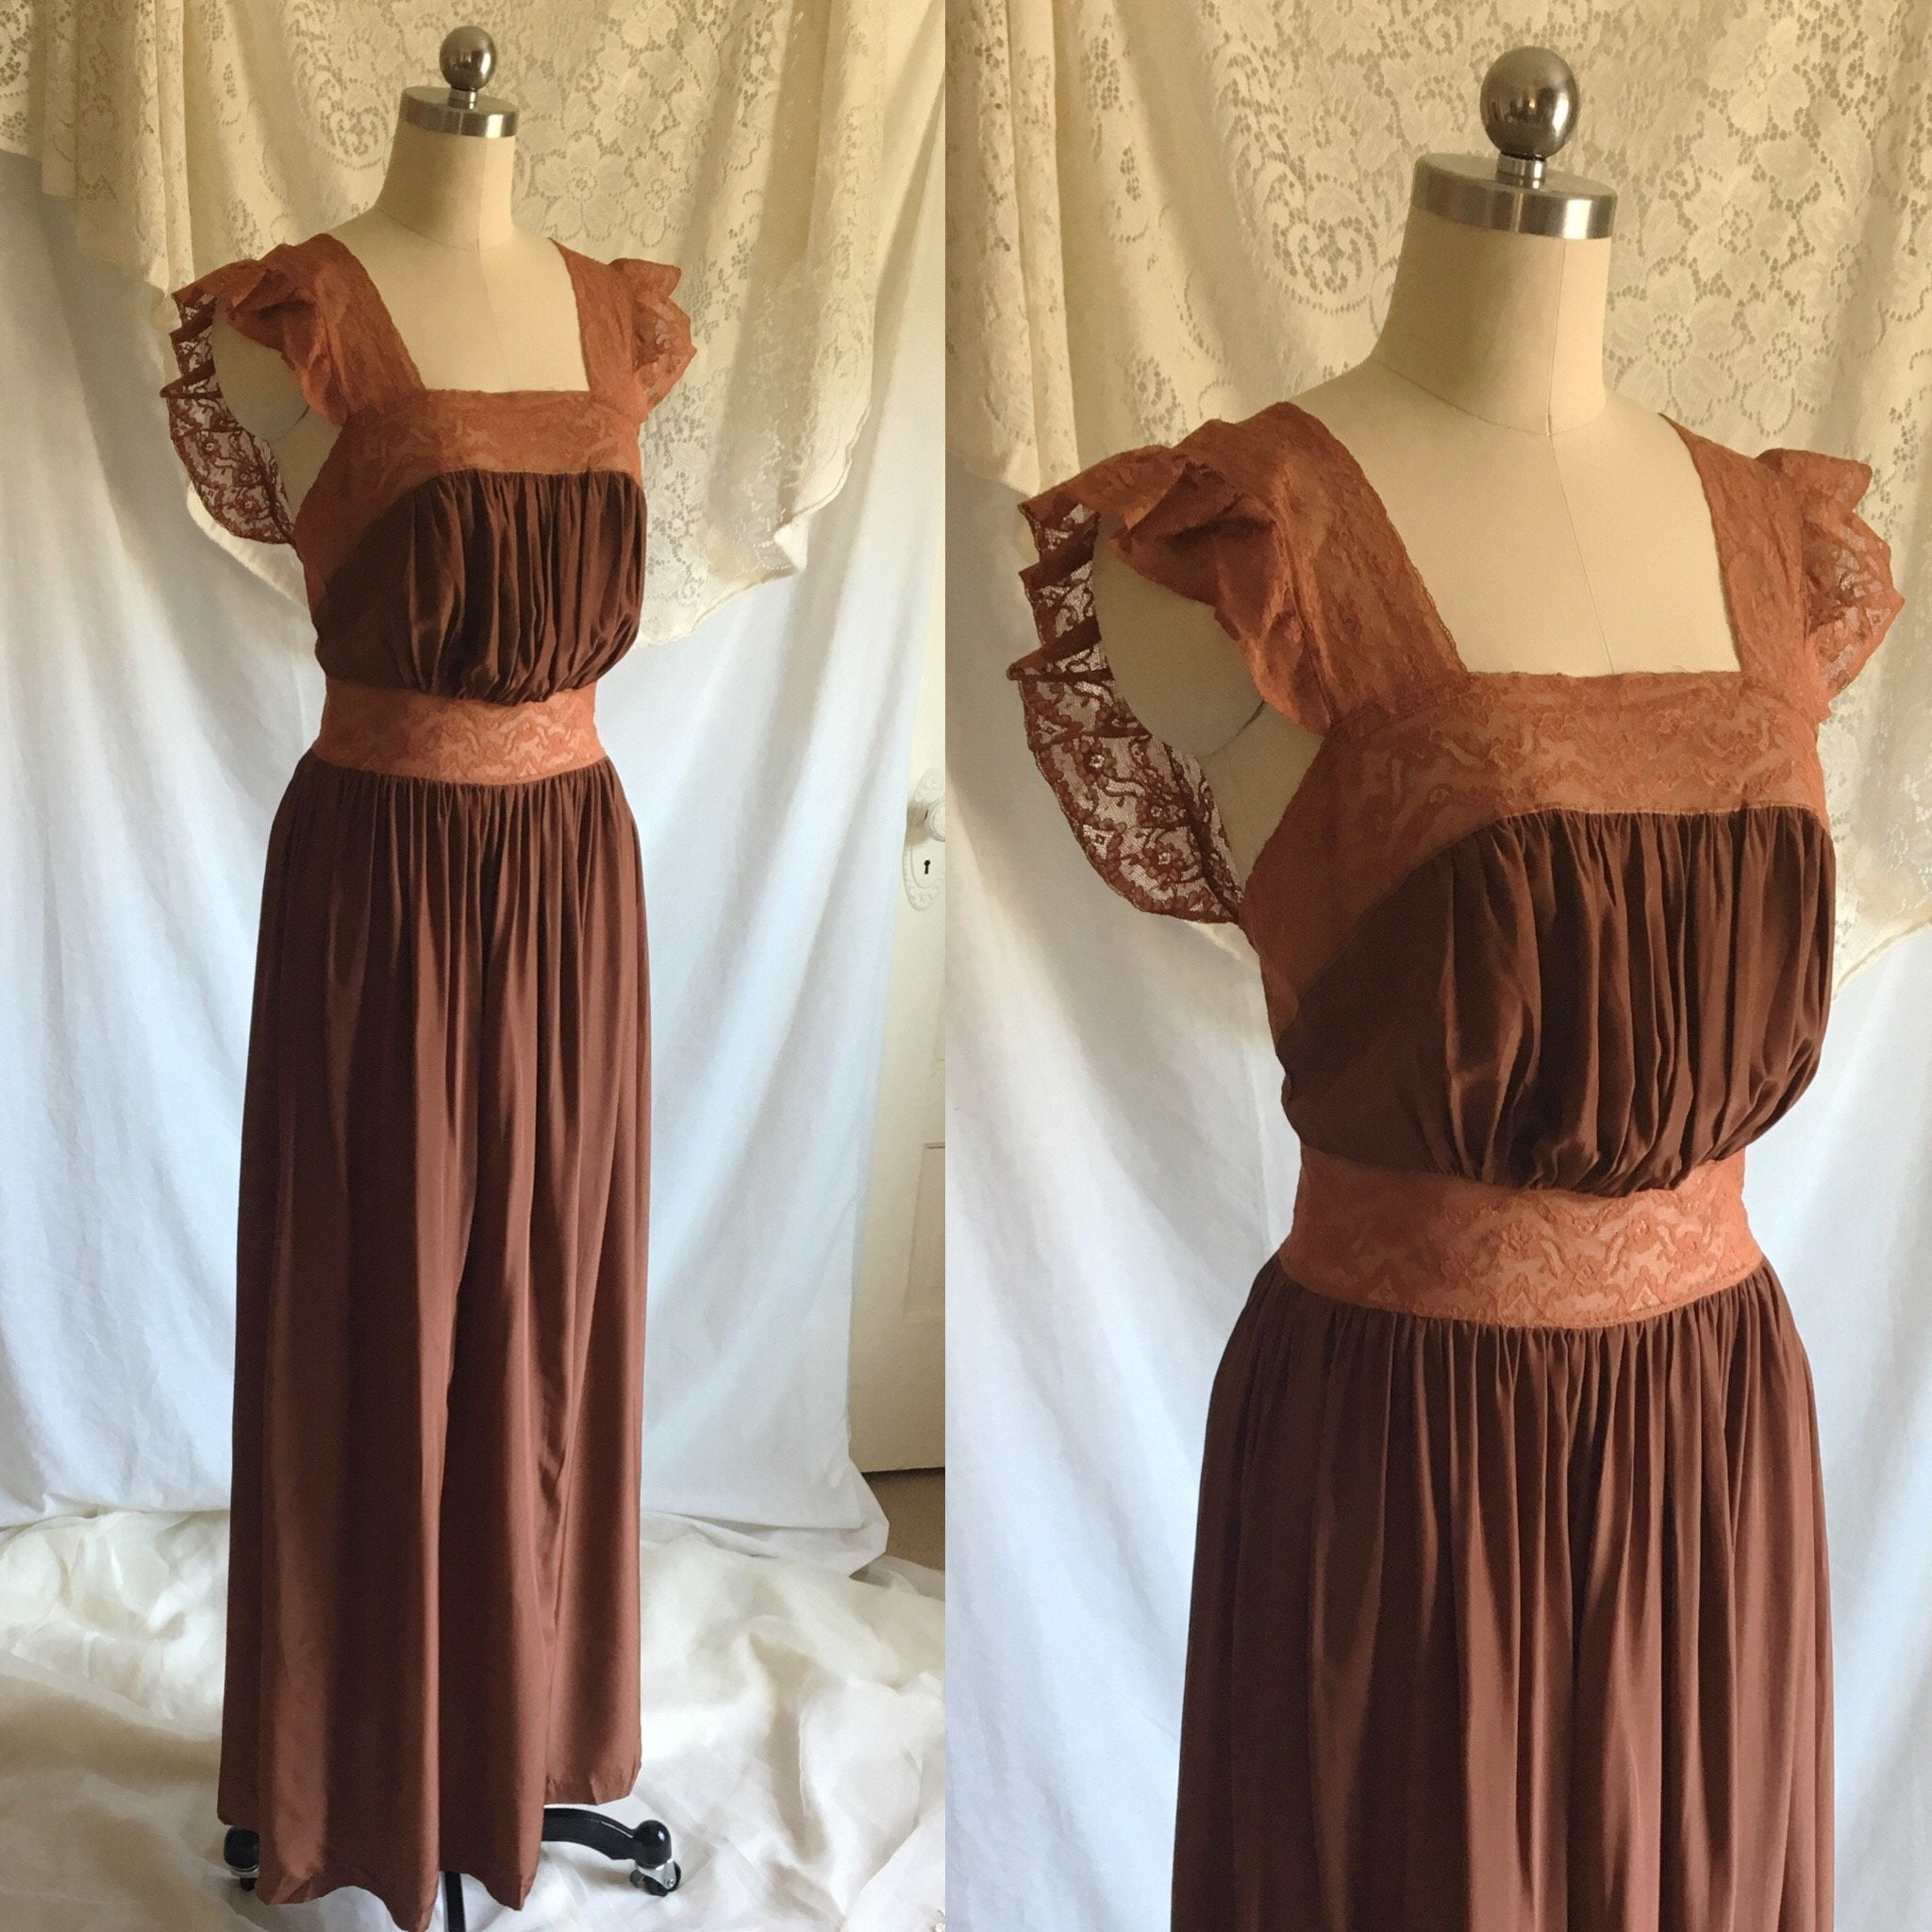 Vintage 1940's Nightgown | Brown Rayon with Bronze Sheen Finish & Chantilly Lace | Size XS - Daggers & Dames